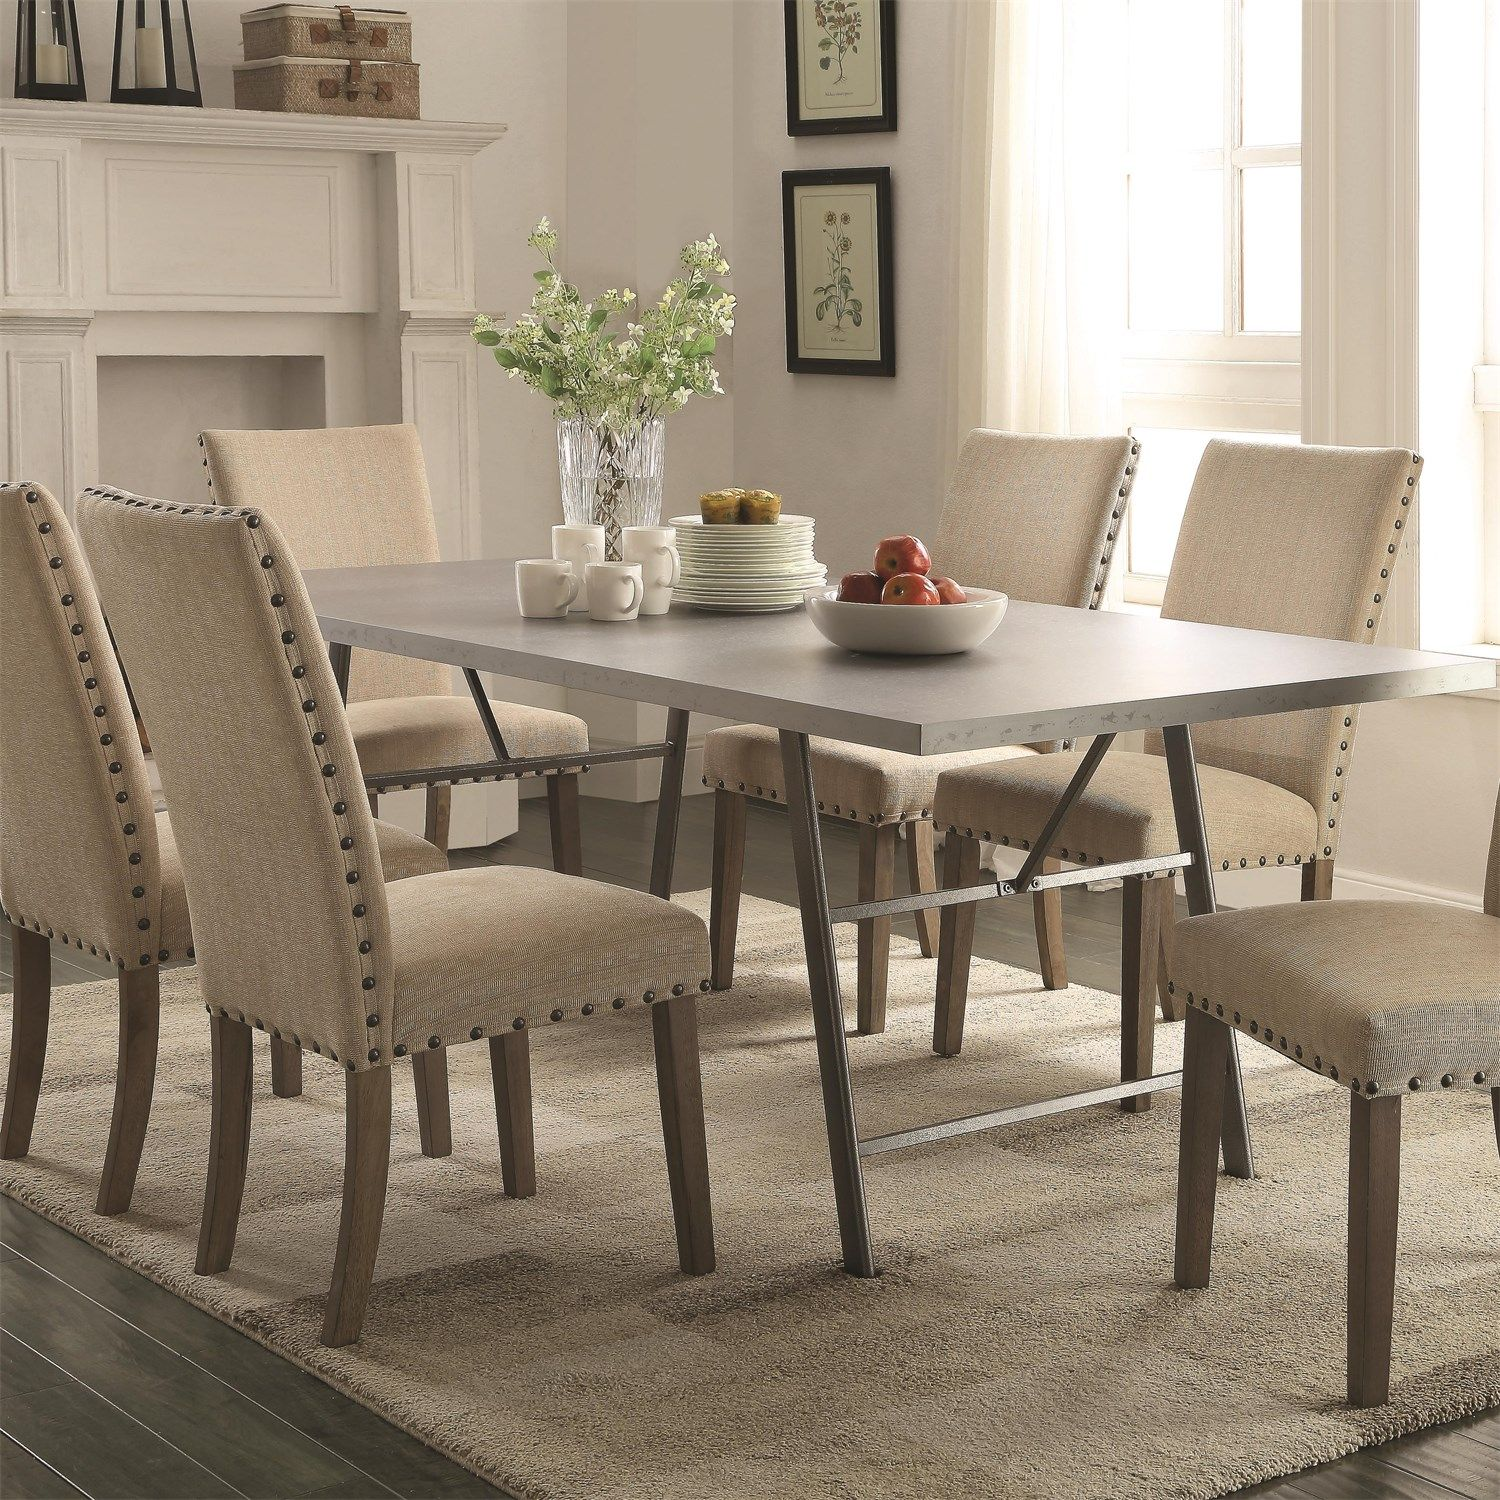 Coaster Furniture 105581 Amherst Dining Table In Natural Gunmetal